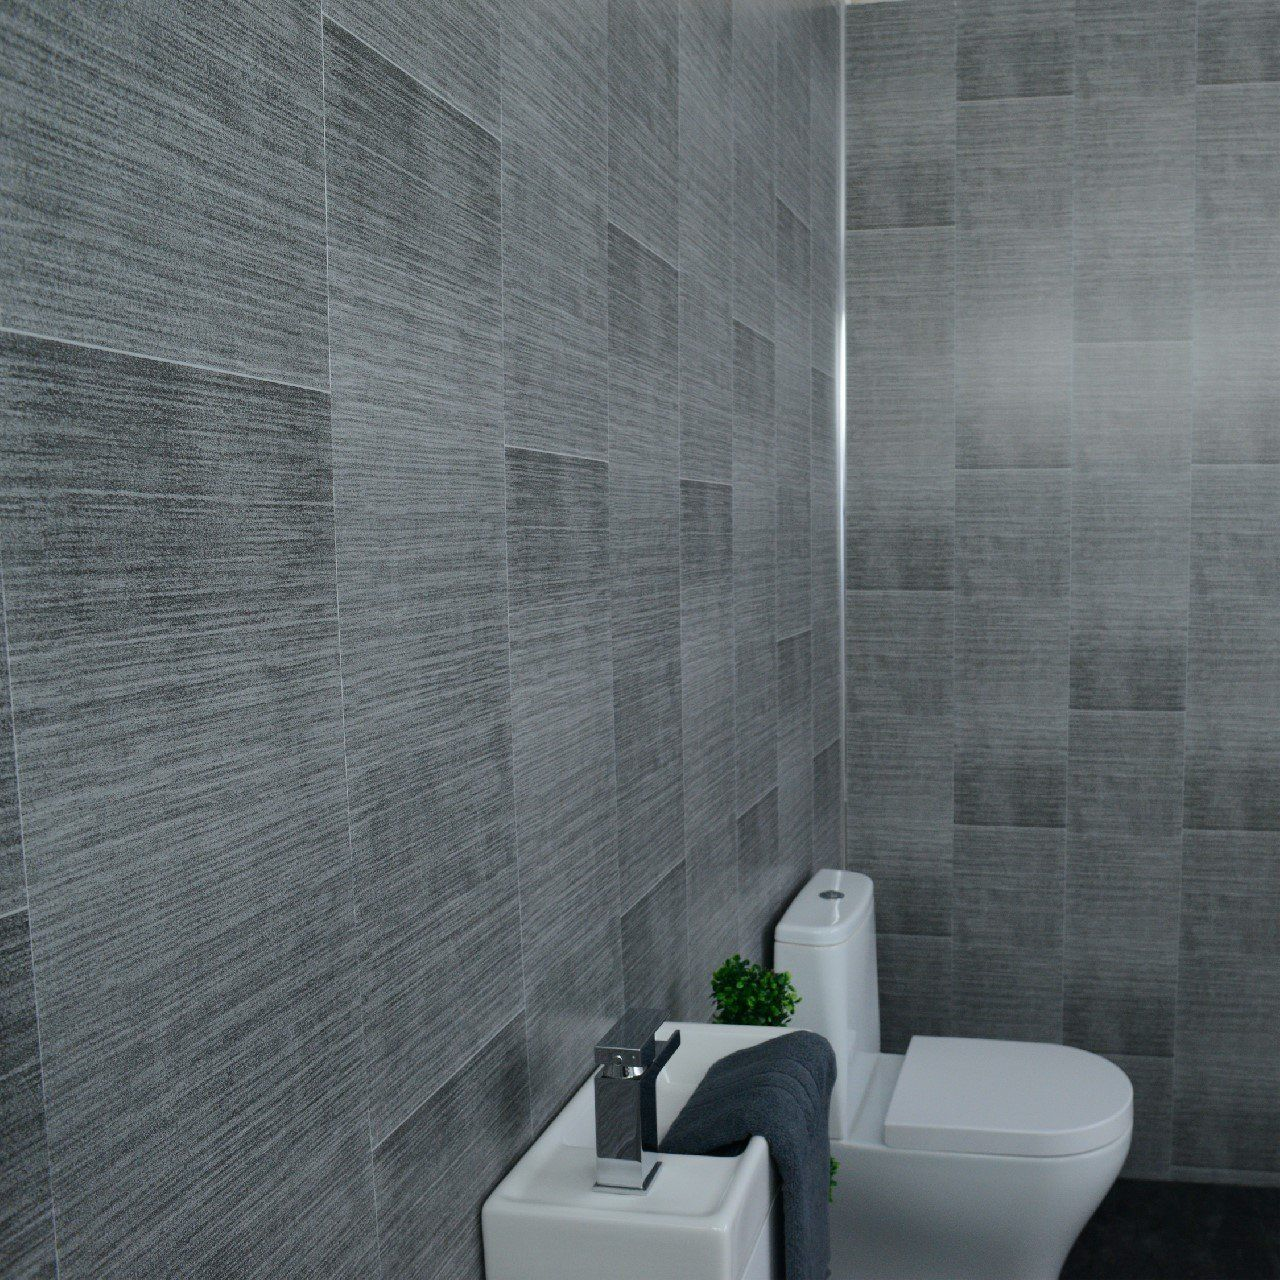 Dark Grey Bathroom Wall Panels Large Tile Effect Small Tile Effect Cladding Panel Bathroom Wall Panels Waterproof Bathroom Wall Panels Bathroom Wall Tile